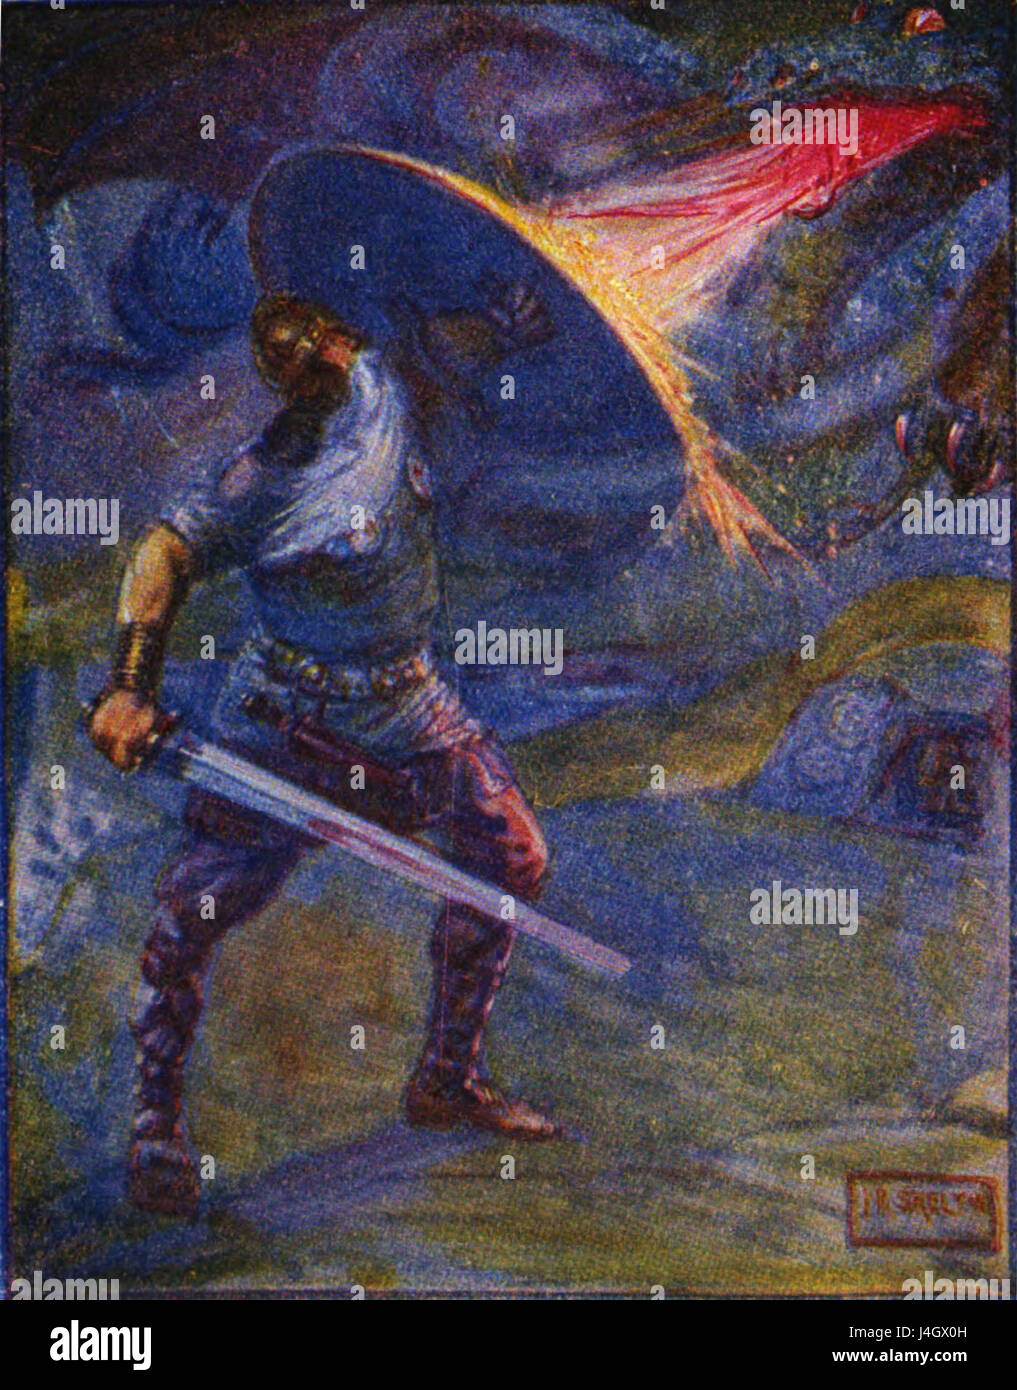 Stories of beowulf fighting the dragon - Stock Image